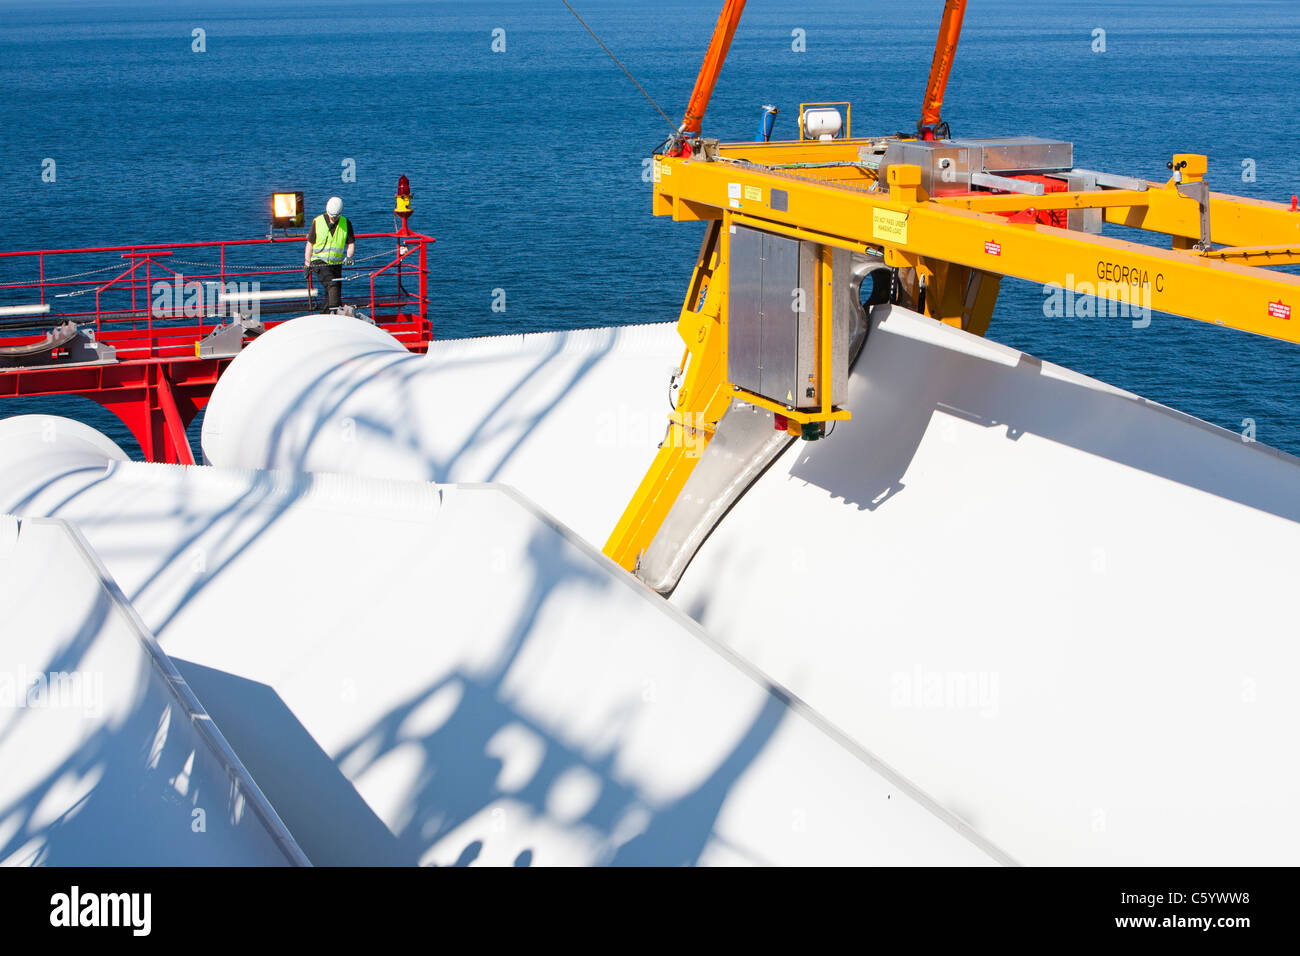 Workers prepare to lift a turbine blade for construction of the Walney offshore wind farm - Stock Image